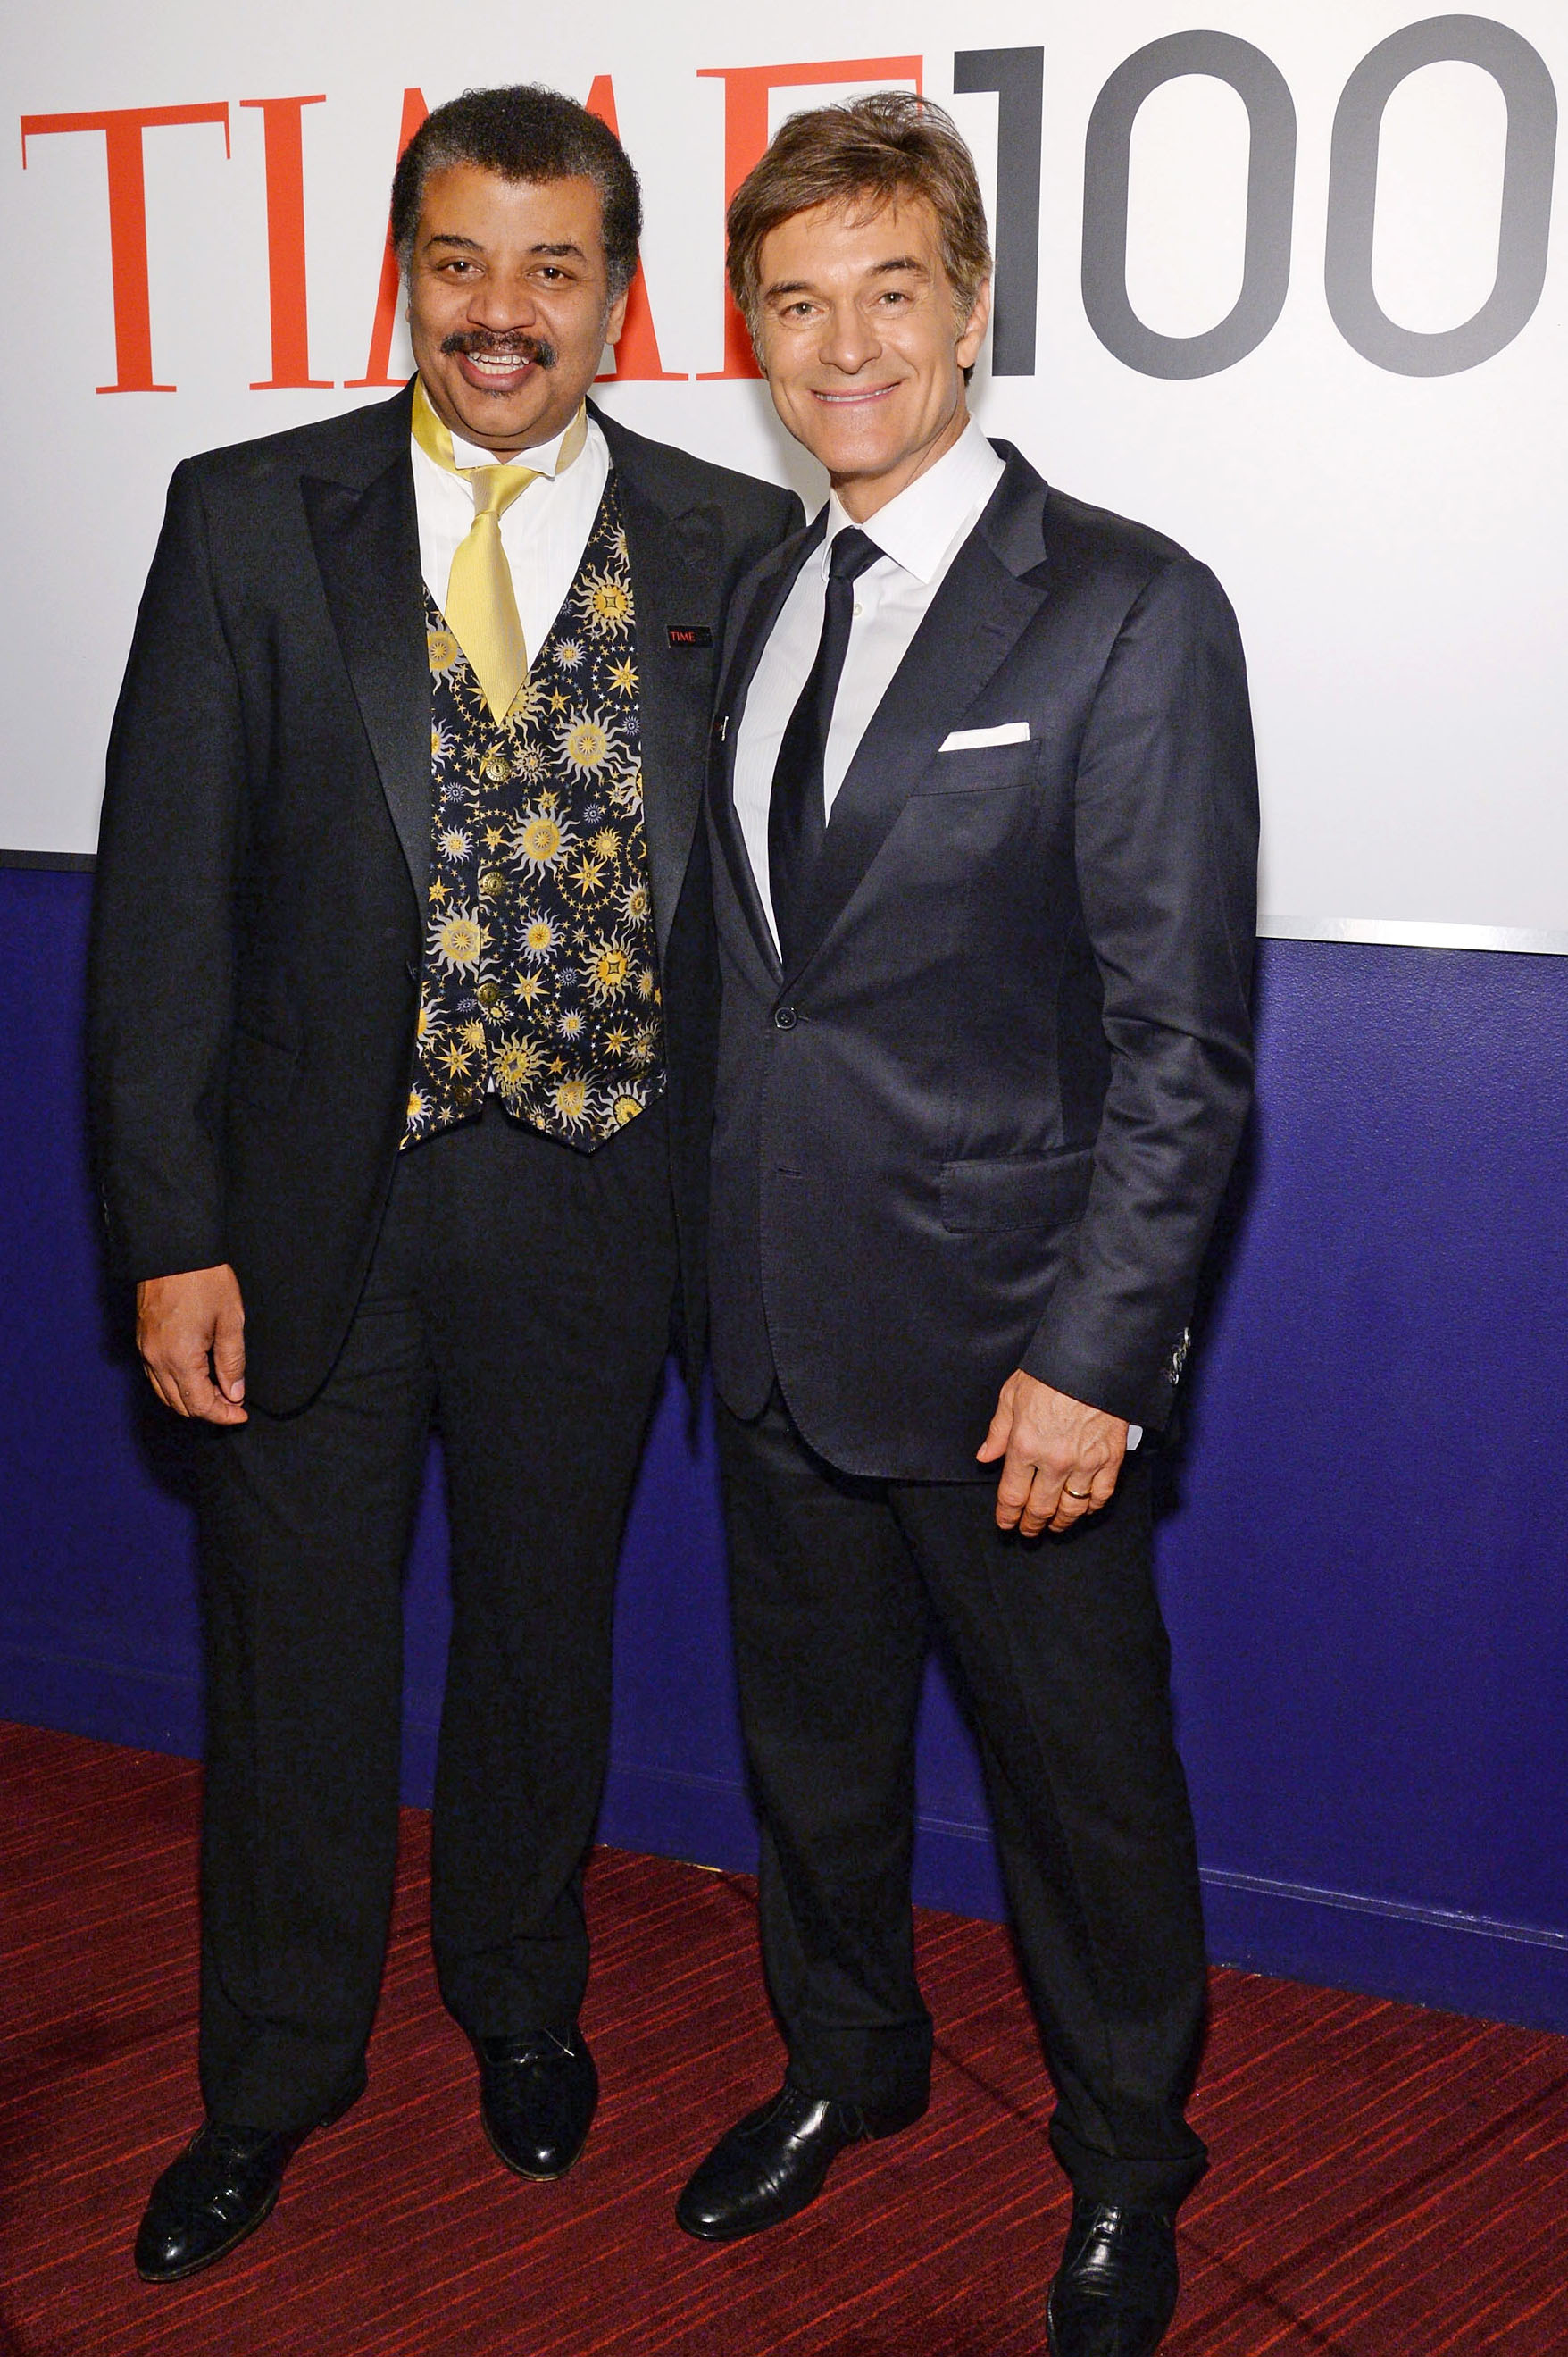 From left: Neil deGrasse Tyson and Dr. Mehmet Oz attend the TIME 100 Gala, TIME's 100 most influential people in the world, at Jazz at Lincoln Center on April 29, 2014 in New York City.